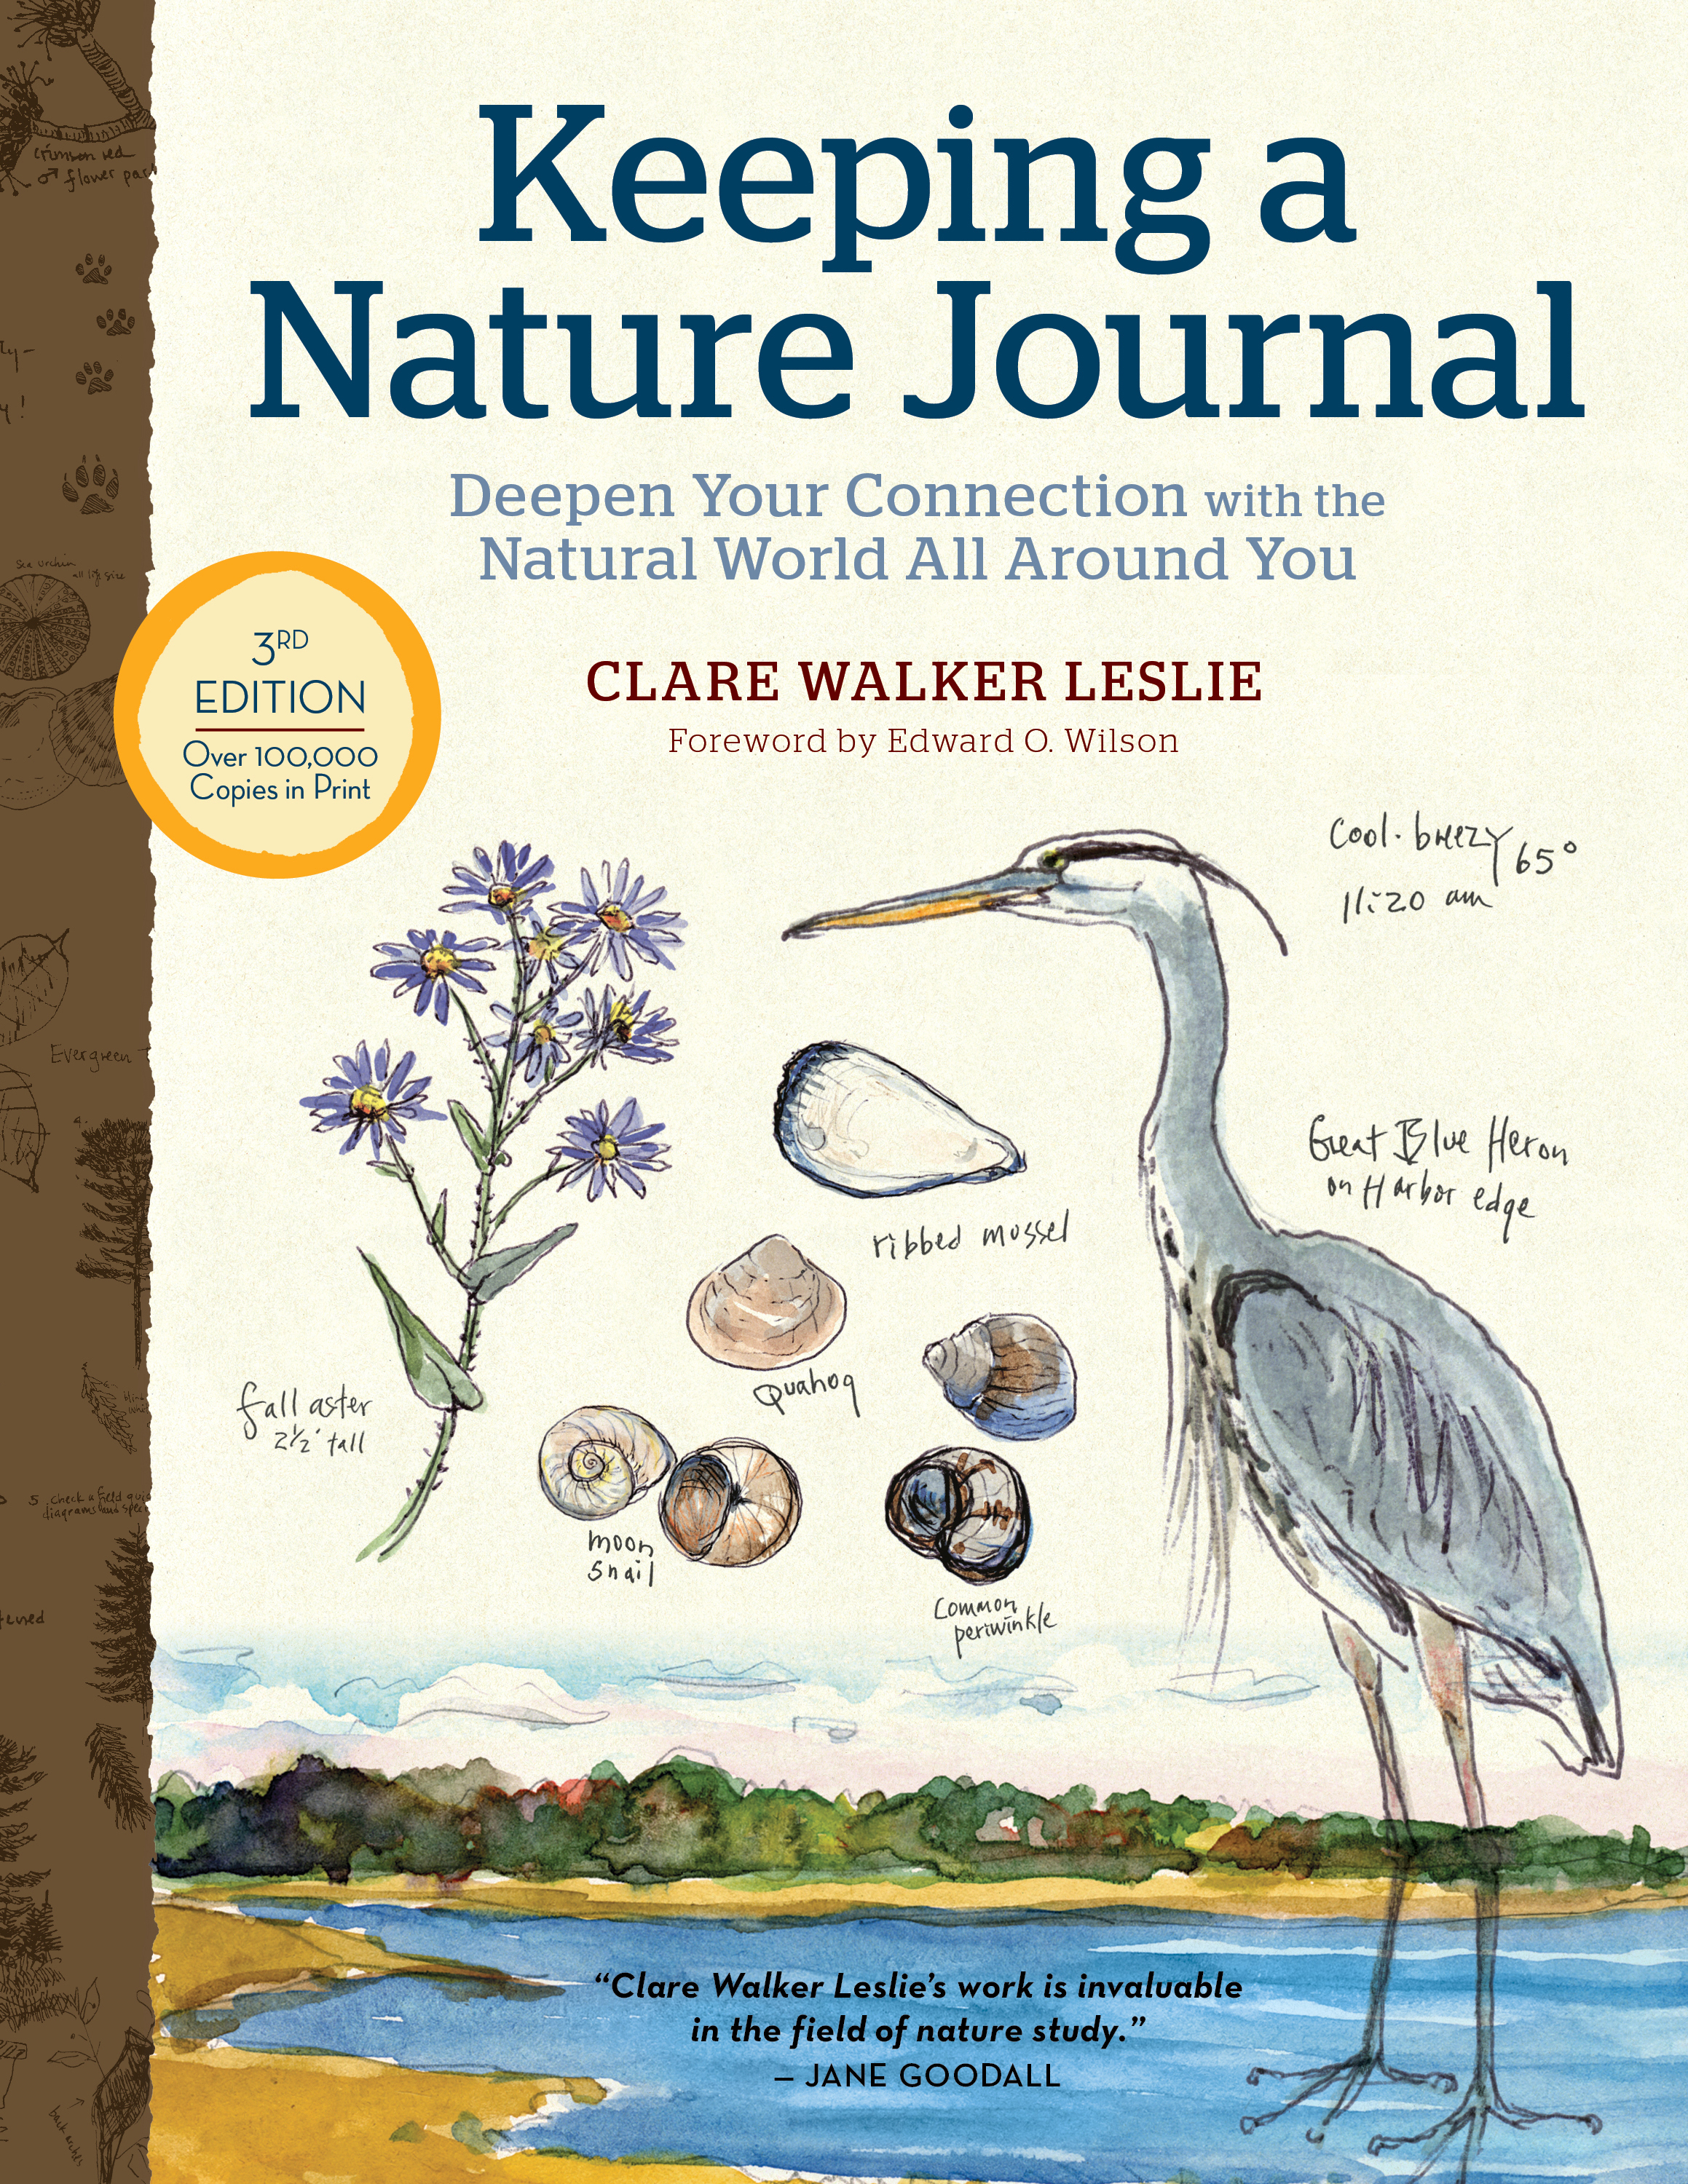 Keeping a Nature Journal, 3rd Edition Deepen Your Connection with the Natural World All Around You - Clare Walker Leslie